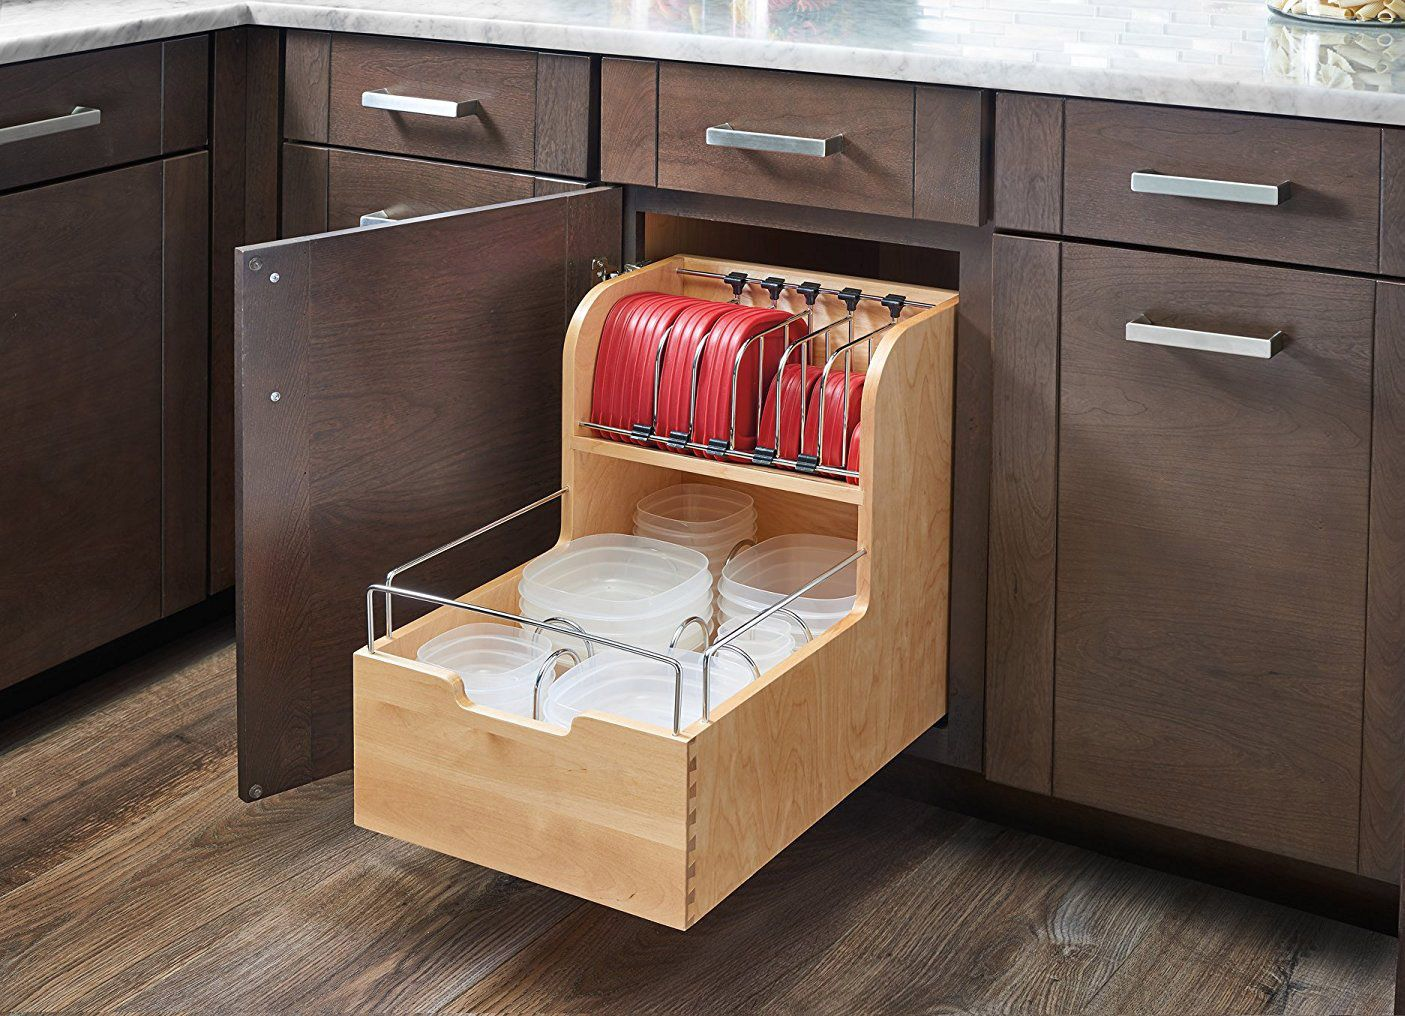 15 Dream Drawer Organizers Genius Drawers You Need In Your Home